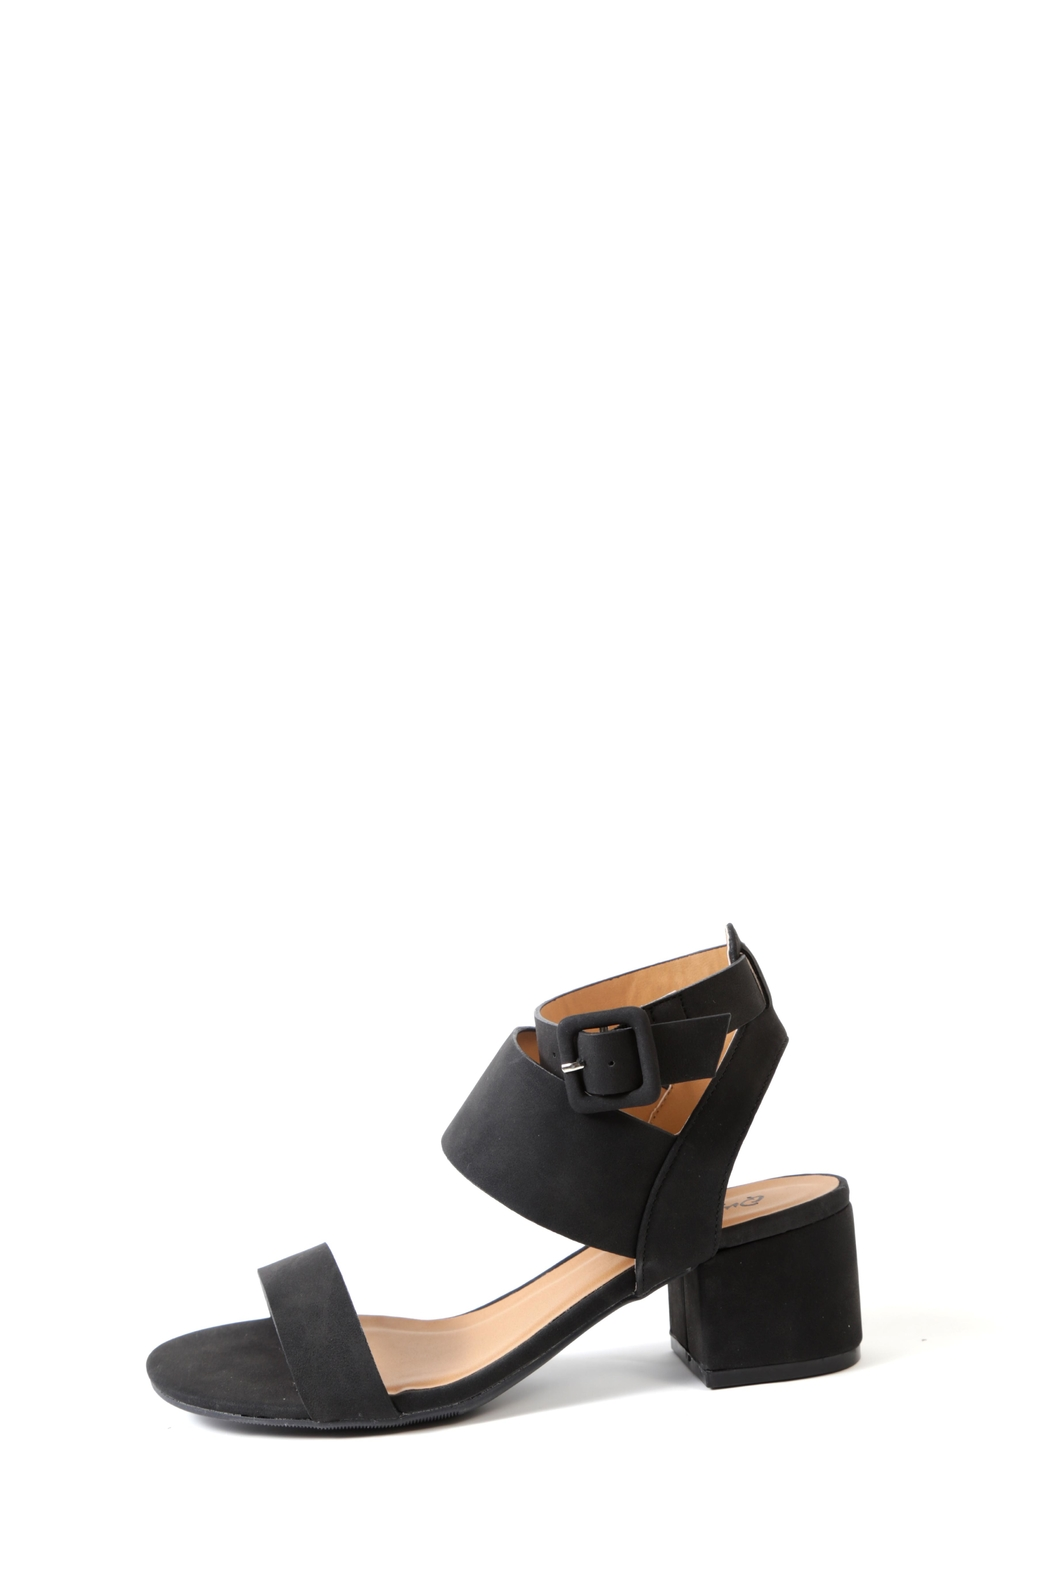 Qupid Jaden Low Heeled Sandal - Main Image